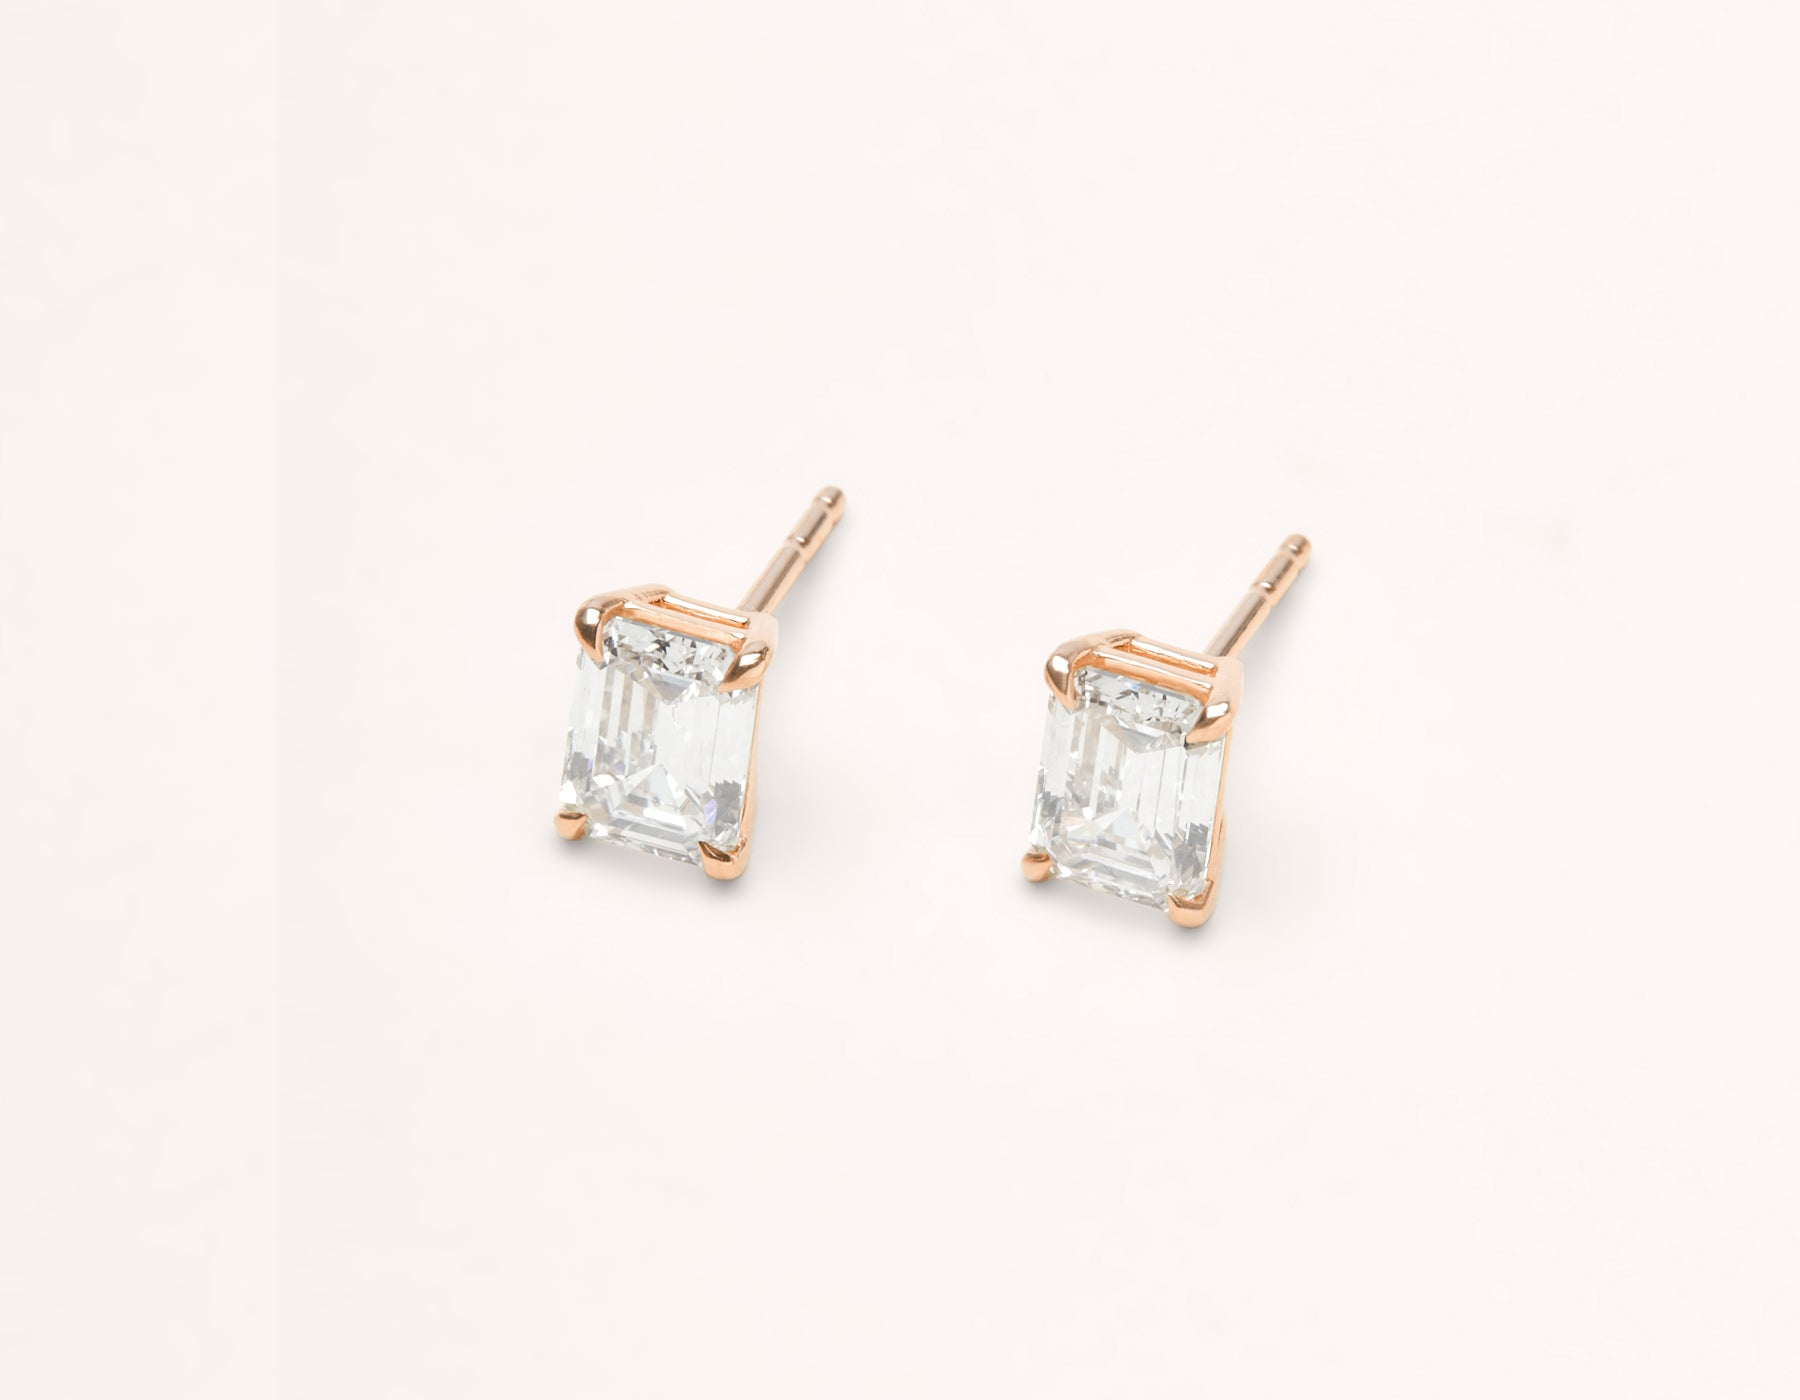 modern minimalist 18k solid gold 1 ct Emerald Studs diamond earrings by Vrai & Oro, 18K Rose Gold